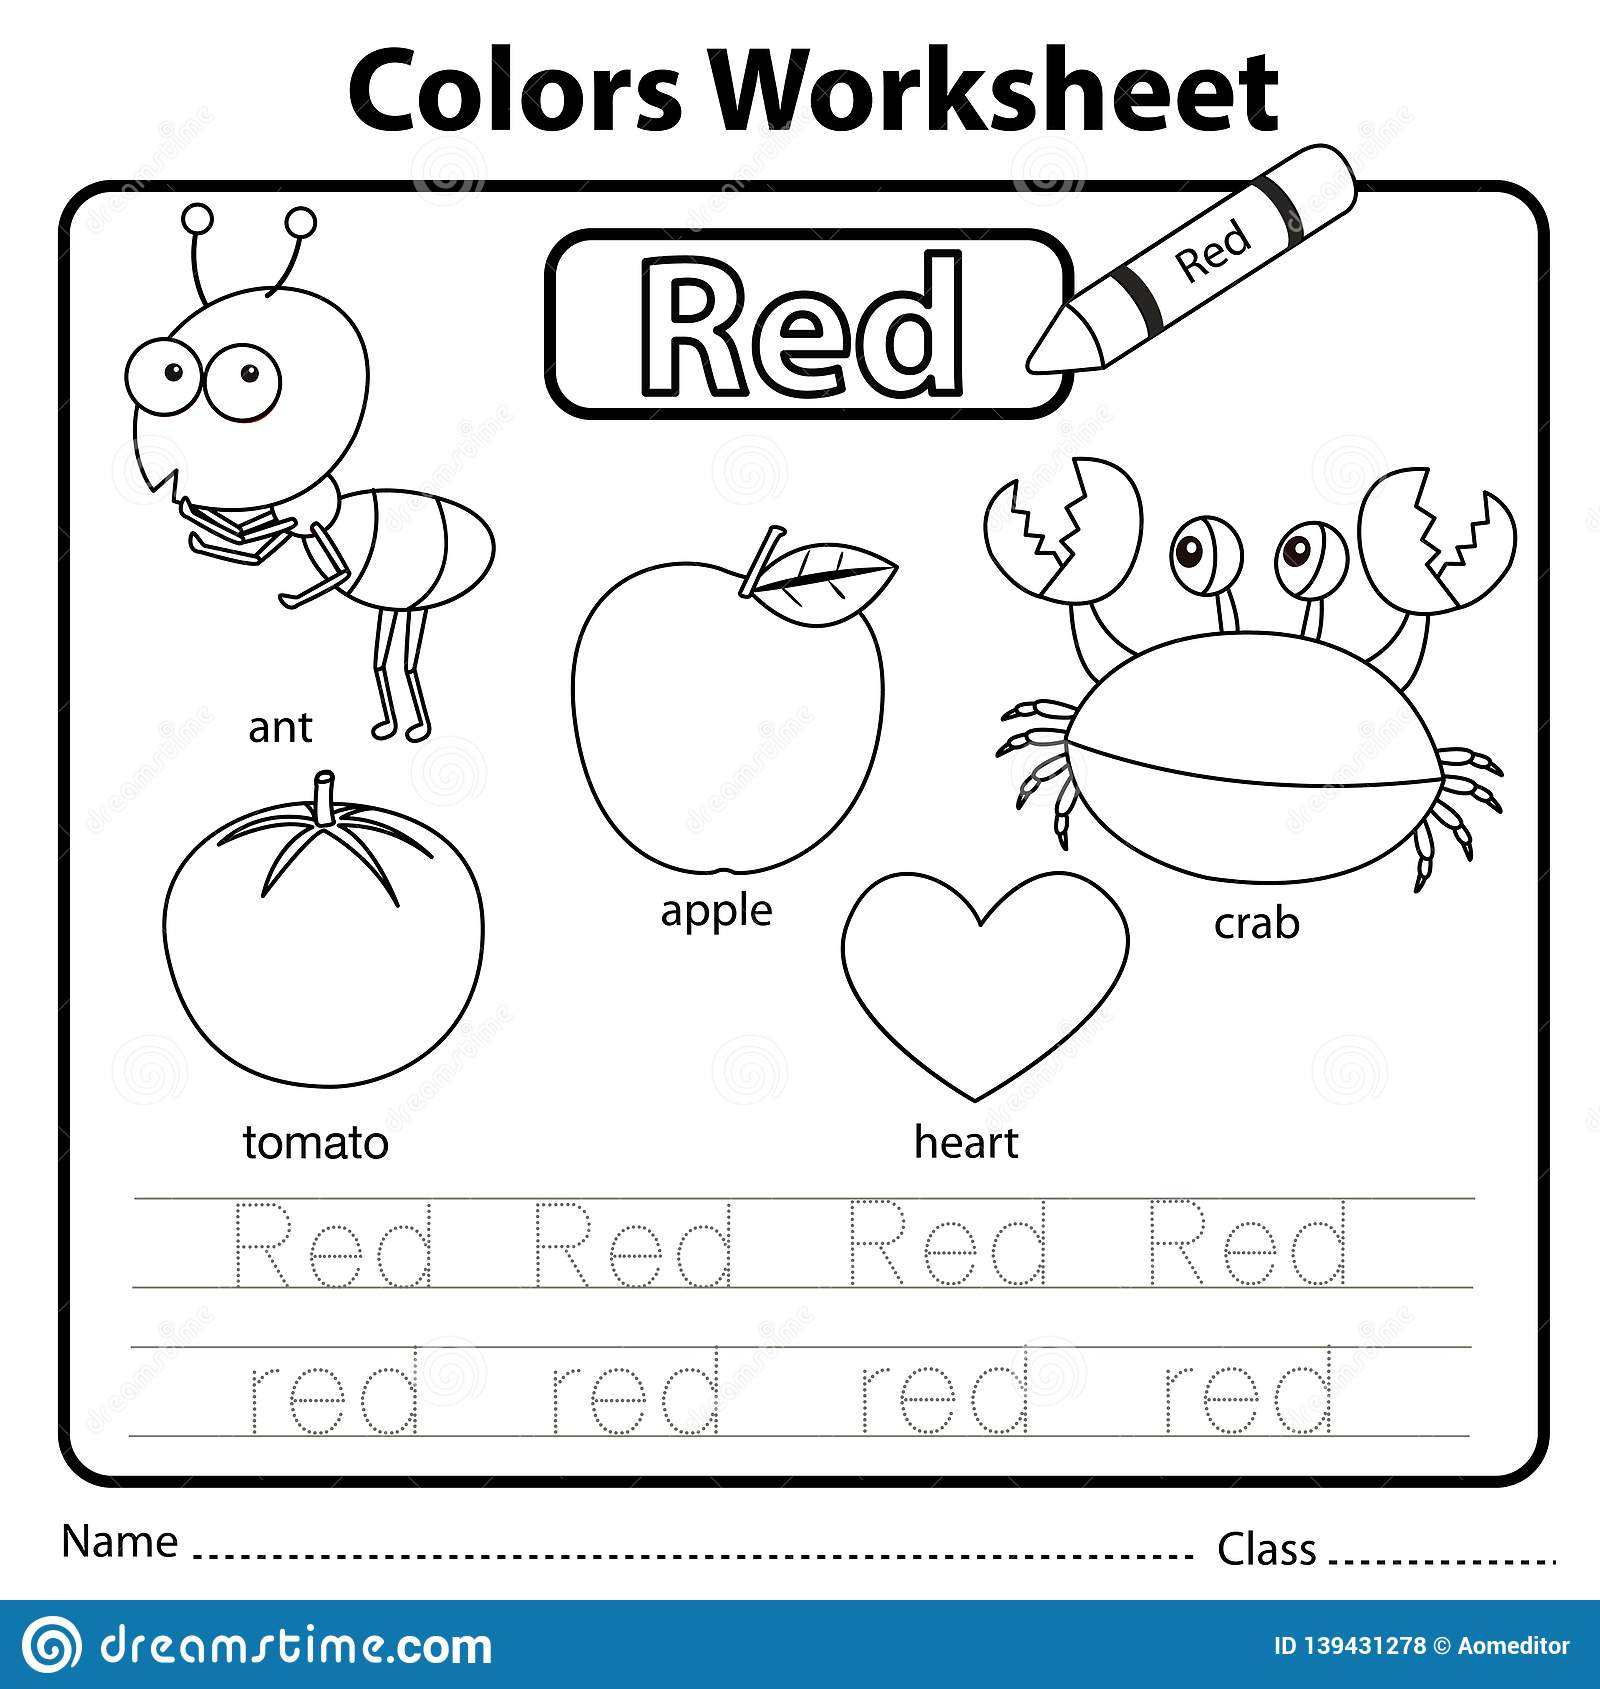 Worksheet For Preschoolers On Colors